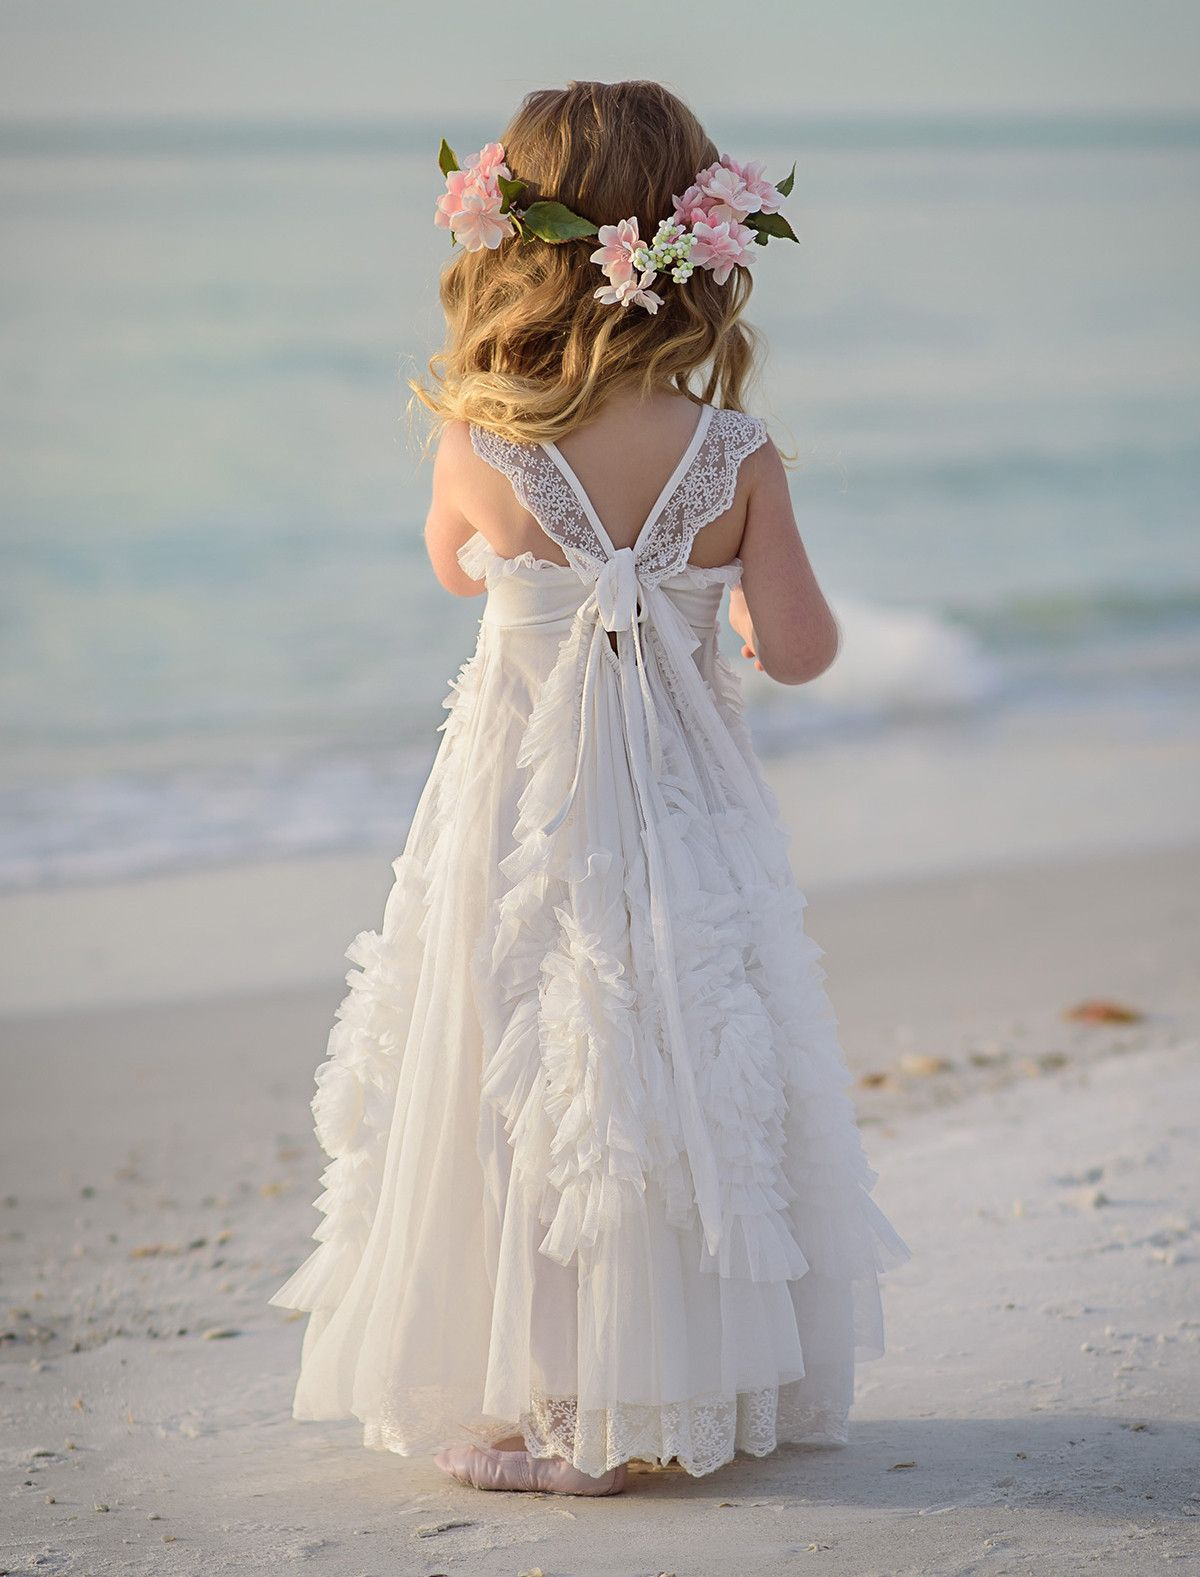 Here she glows frock jakob bella pinterest frocks for Flower girl dress for beach wedding